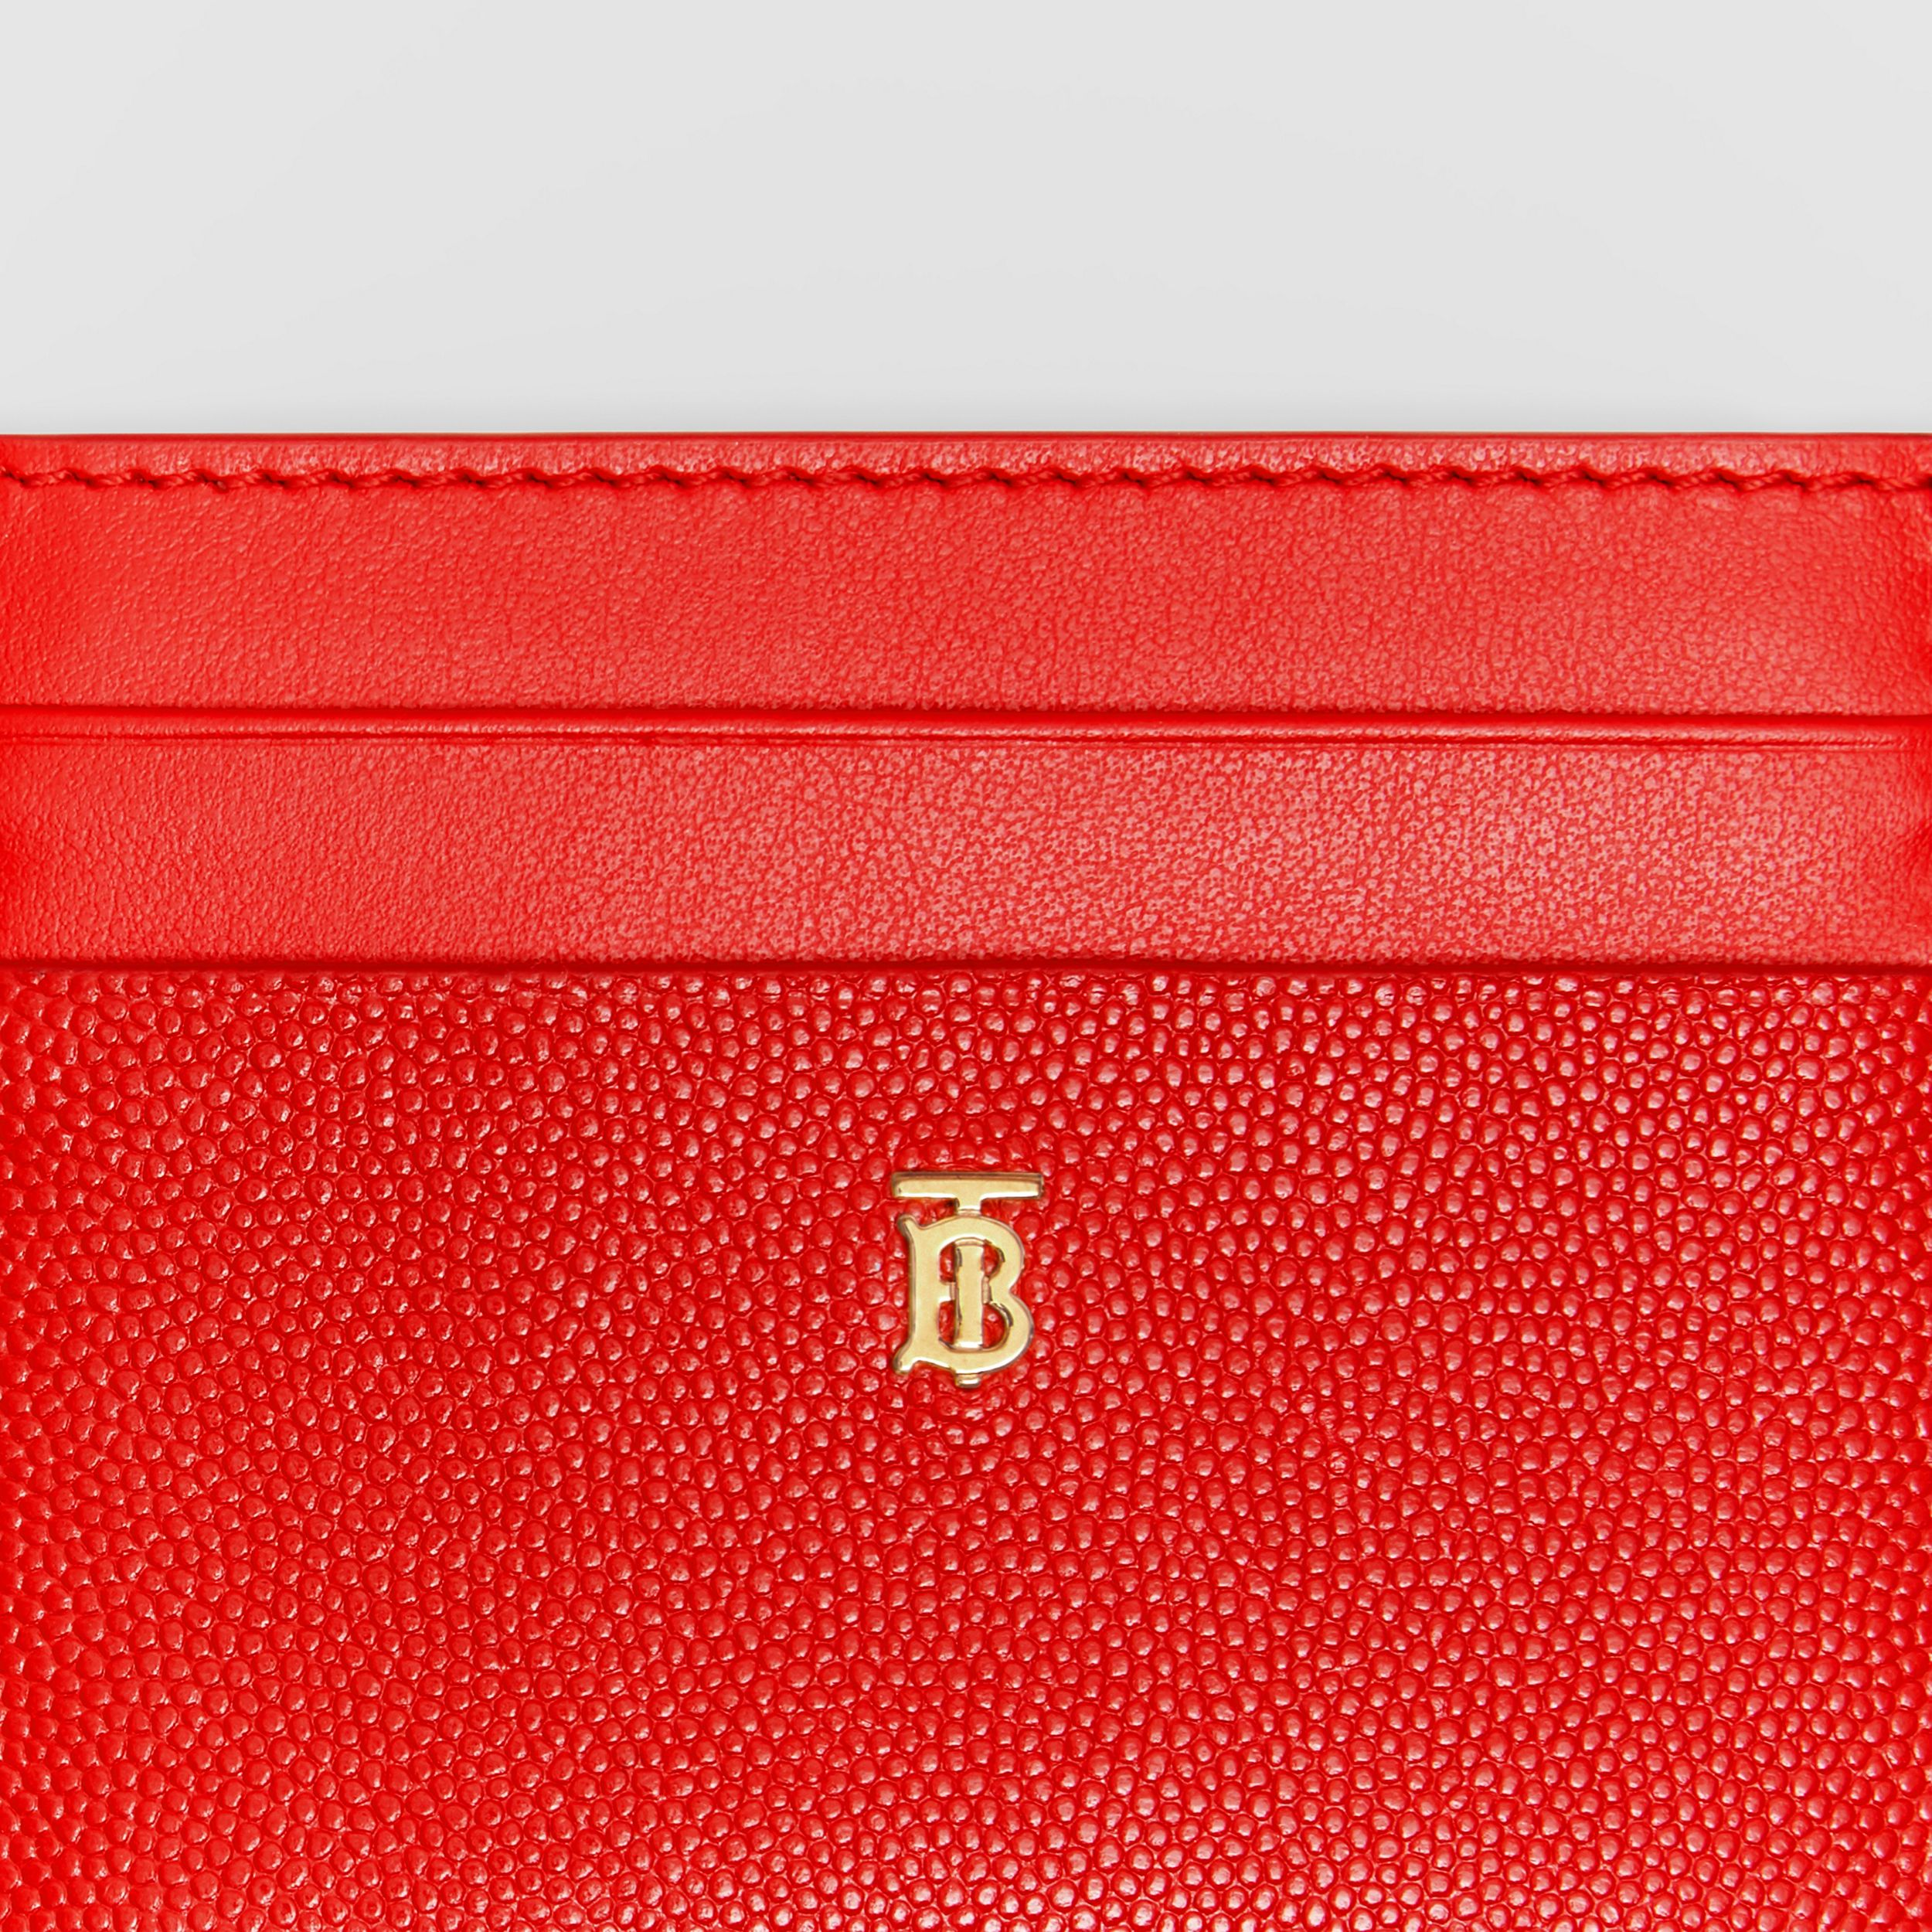 Monogram Motif Leather Card Case in Bright Red - Women | Burberry - 2